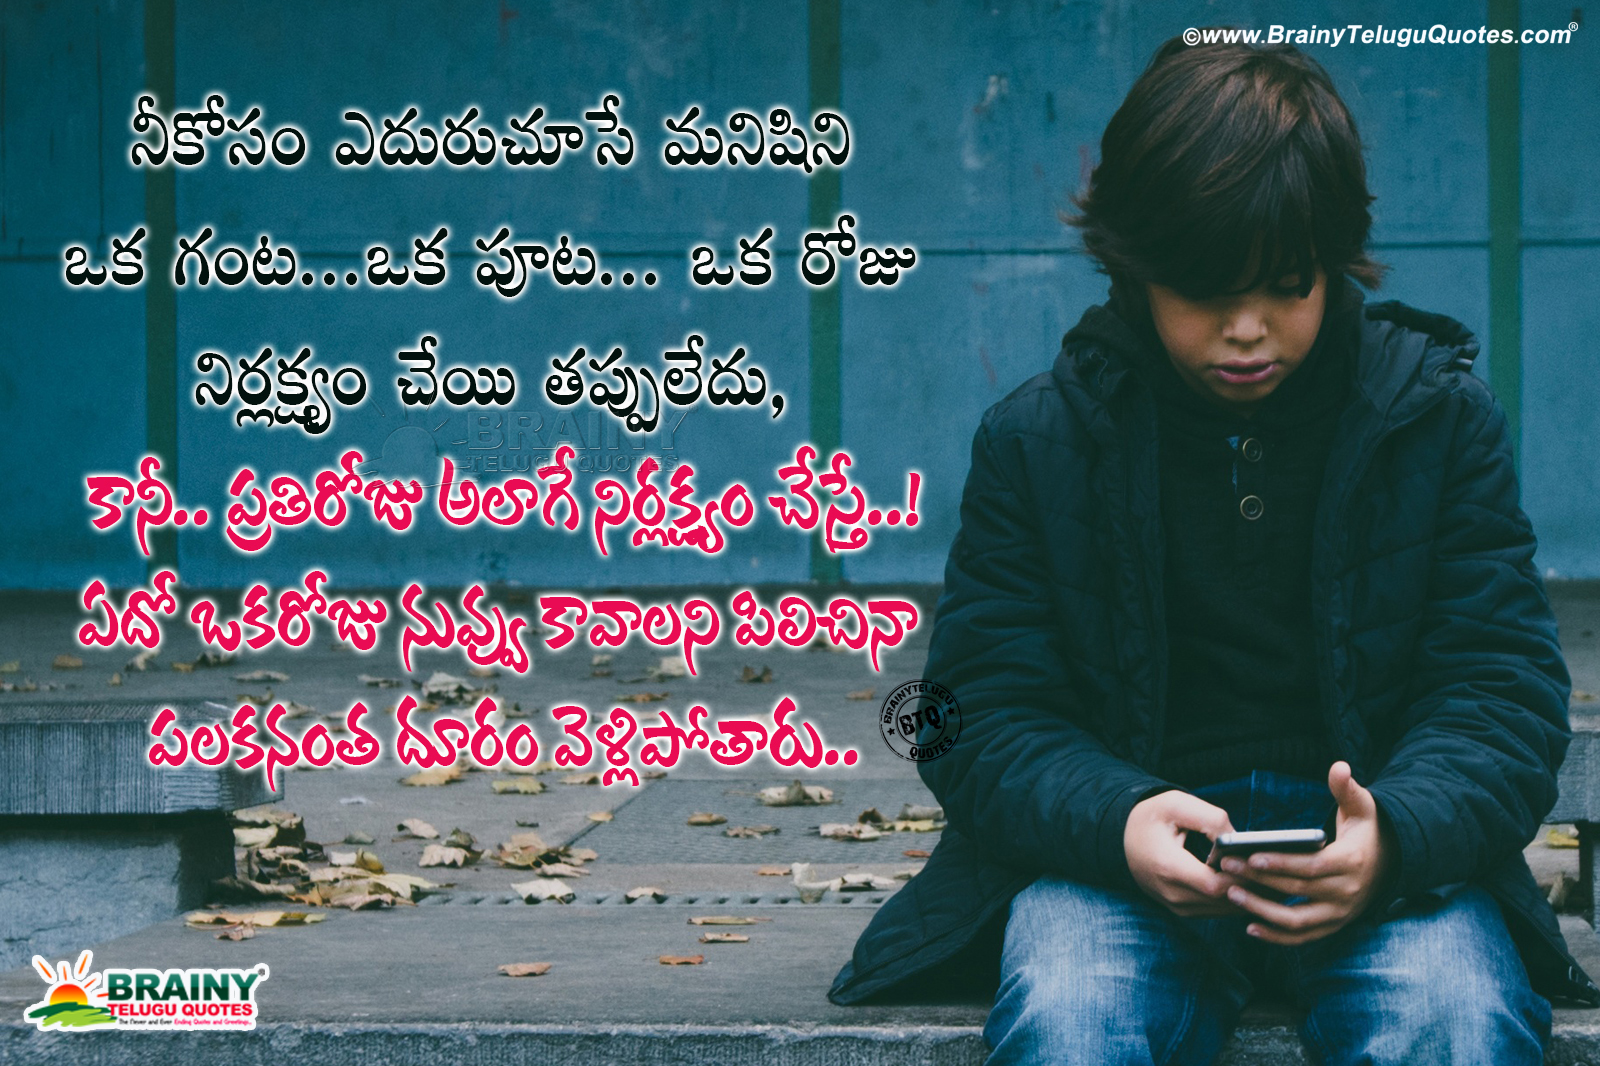 Value Of Family Relationship Inspirational Quotes In Telugu Brainyteluguquotes Comtelugu Quotes English Quotes Hindi Quotes Tamil Quotes Greetings